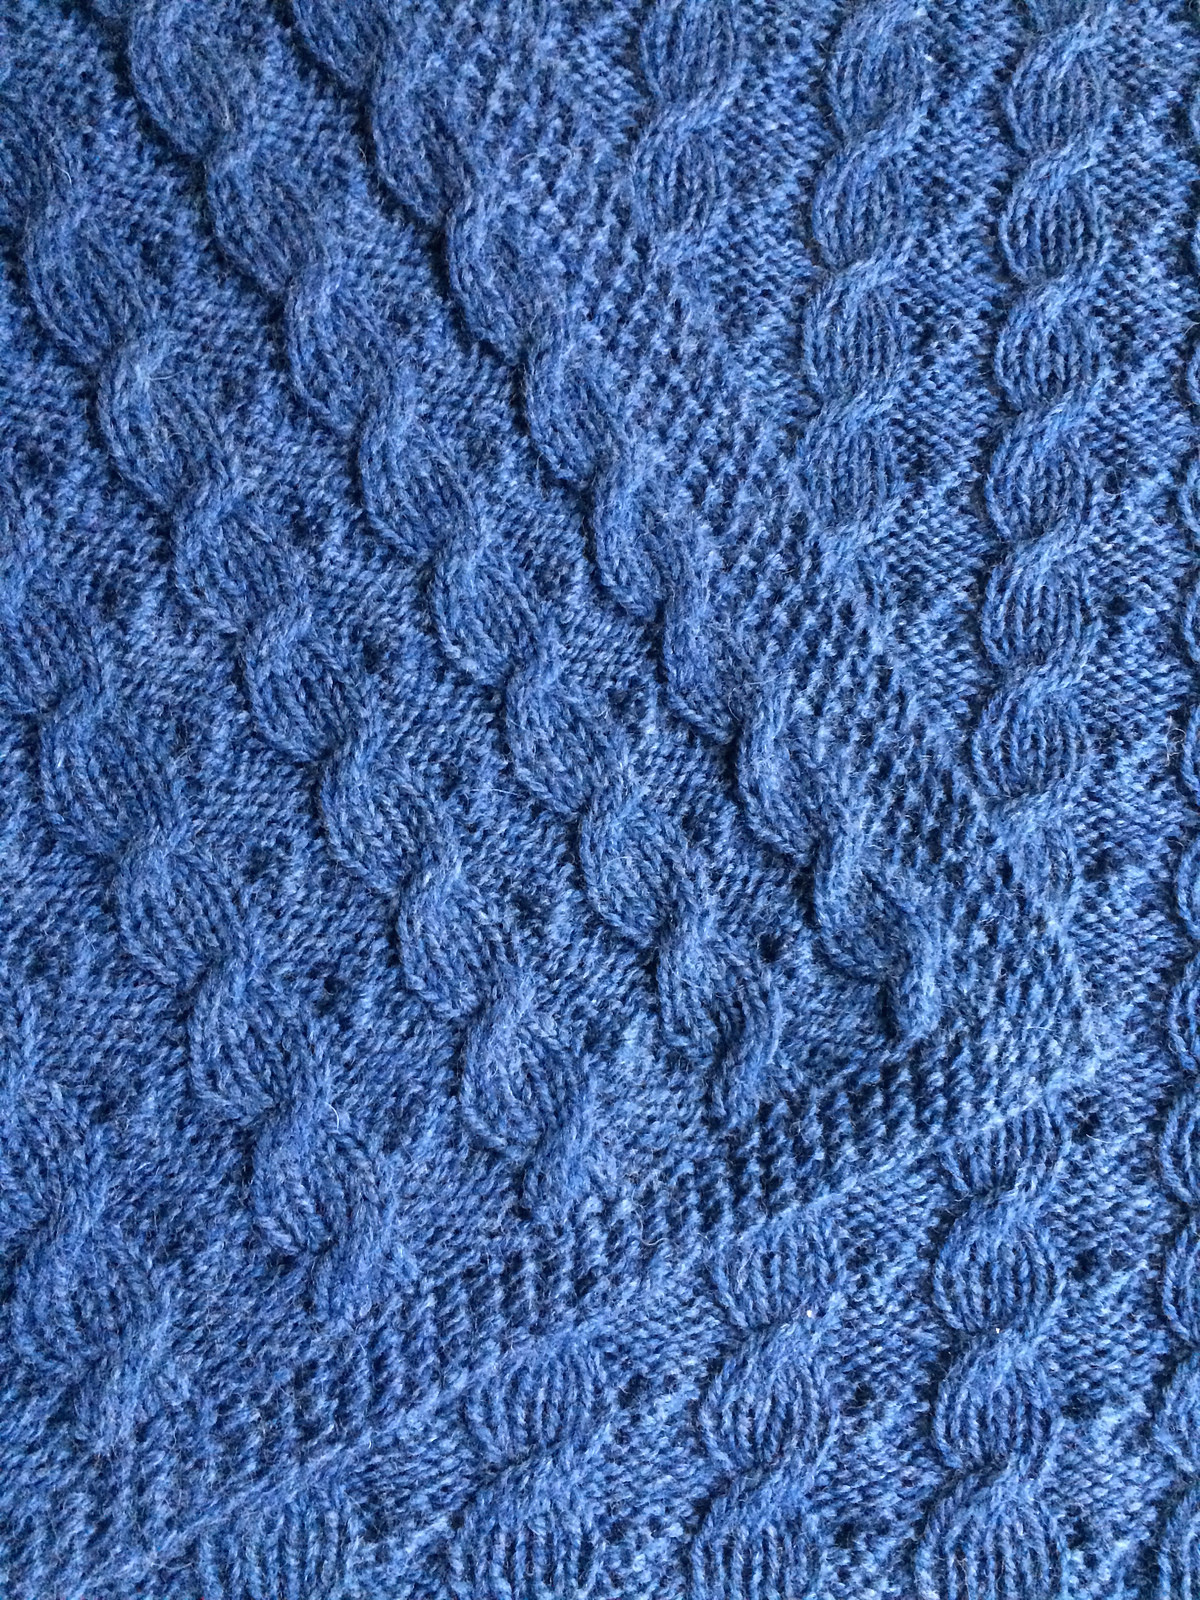 Lovely Reversible Cable Knitting Patterns Free Knitting Of Charming 40 Pics Free Knitting